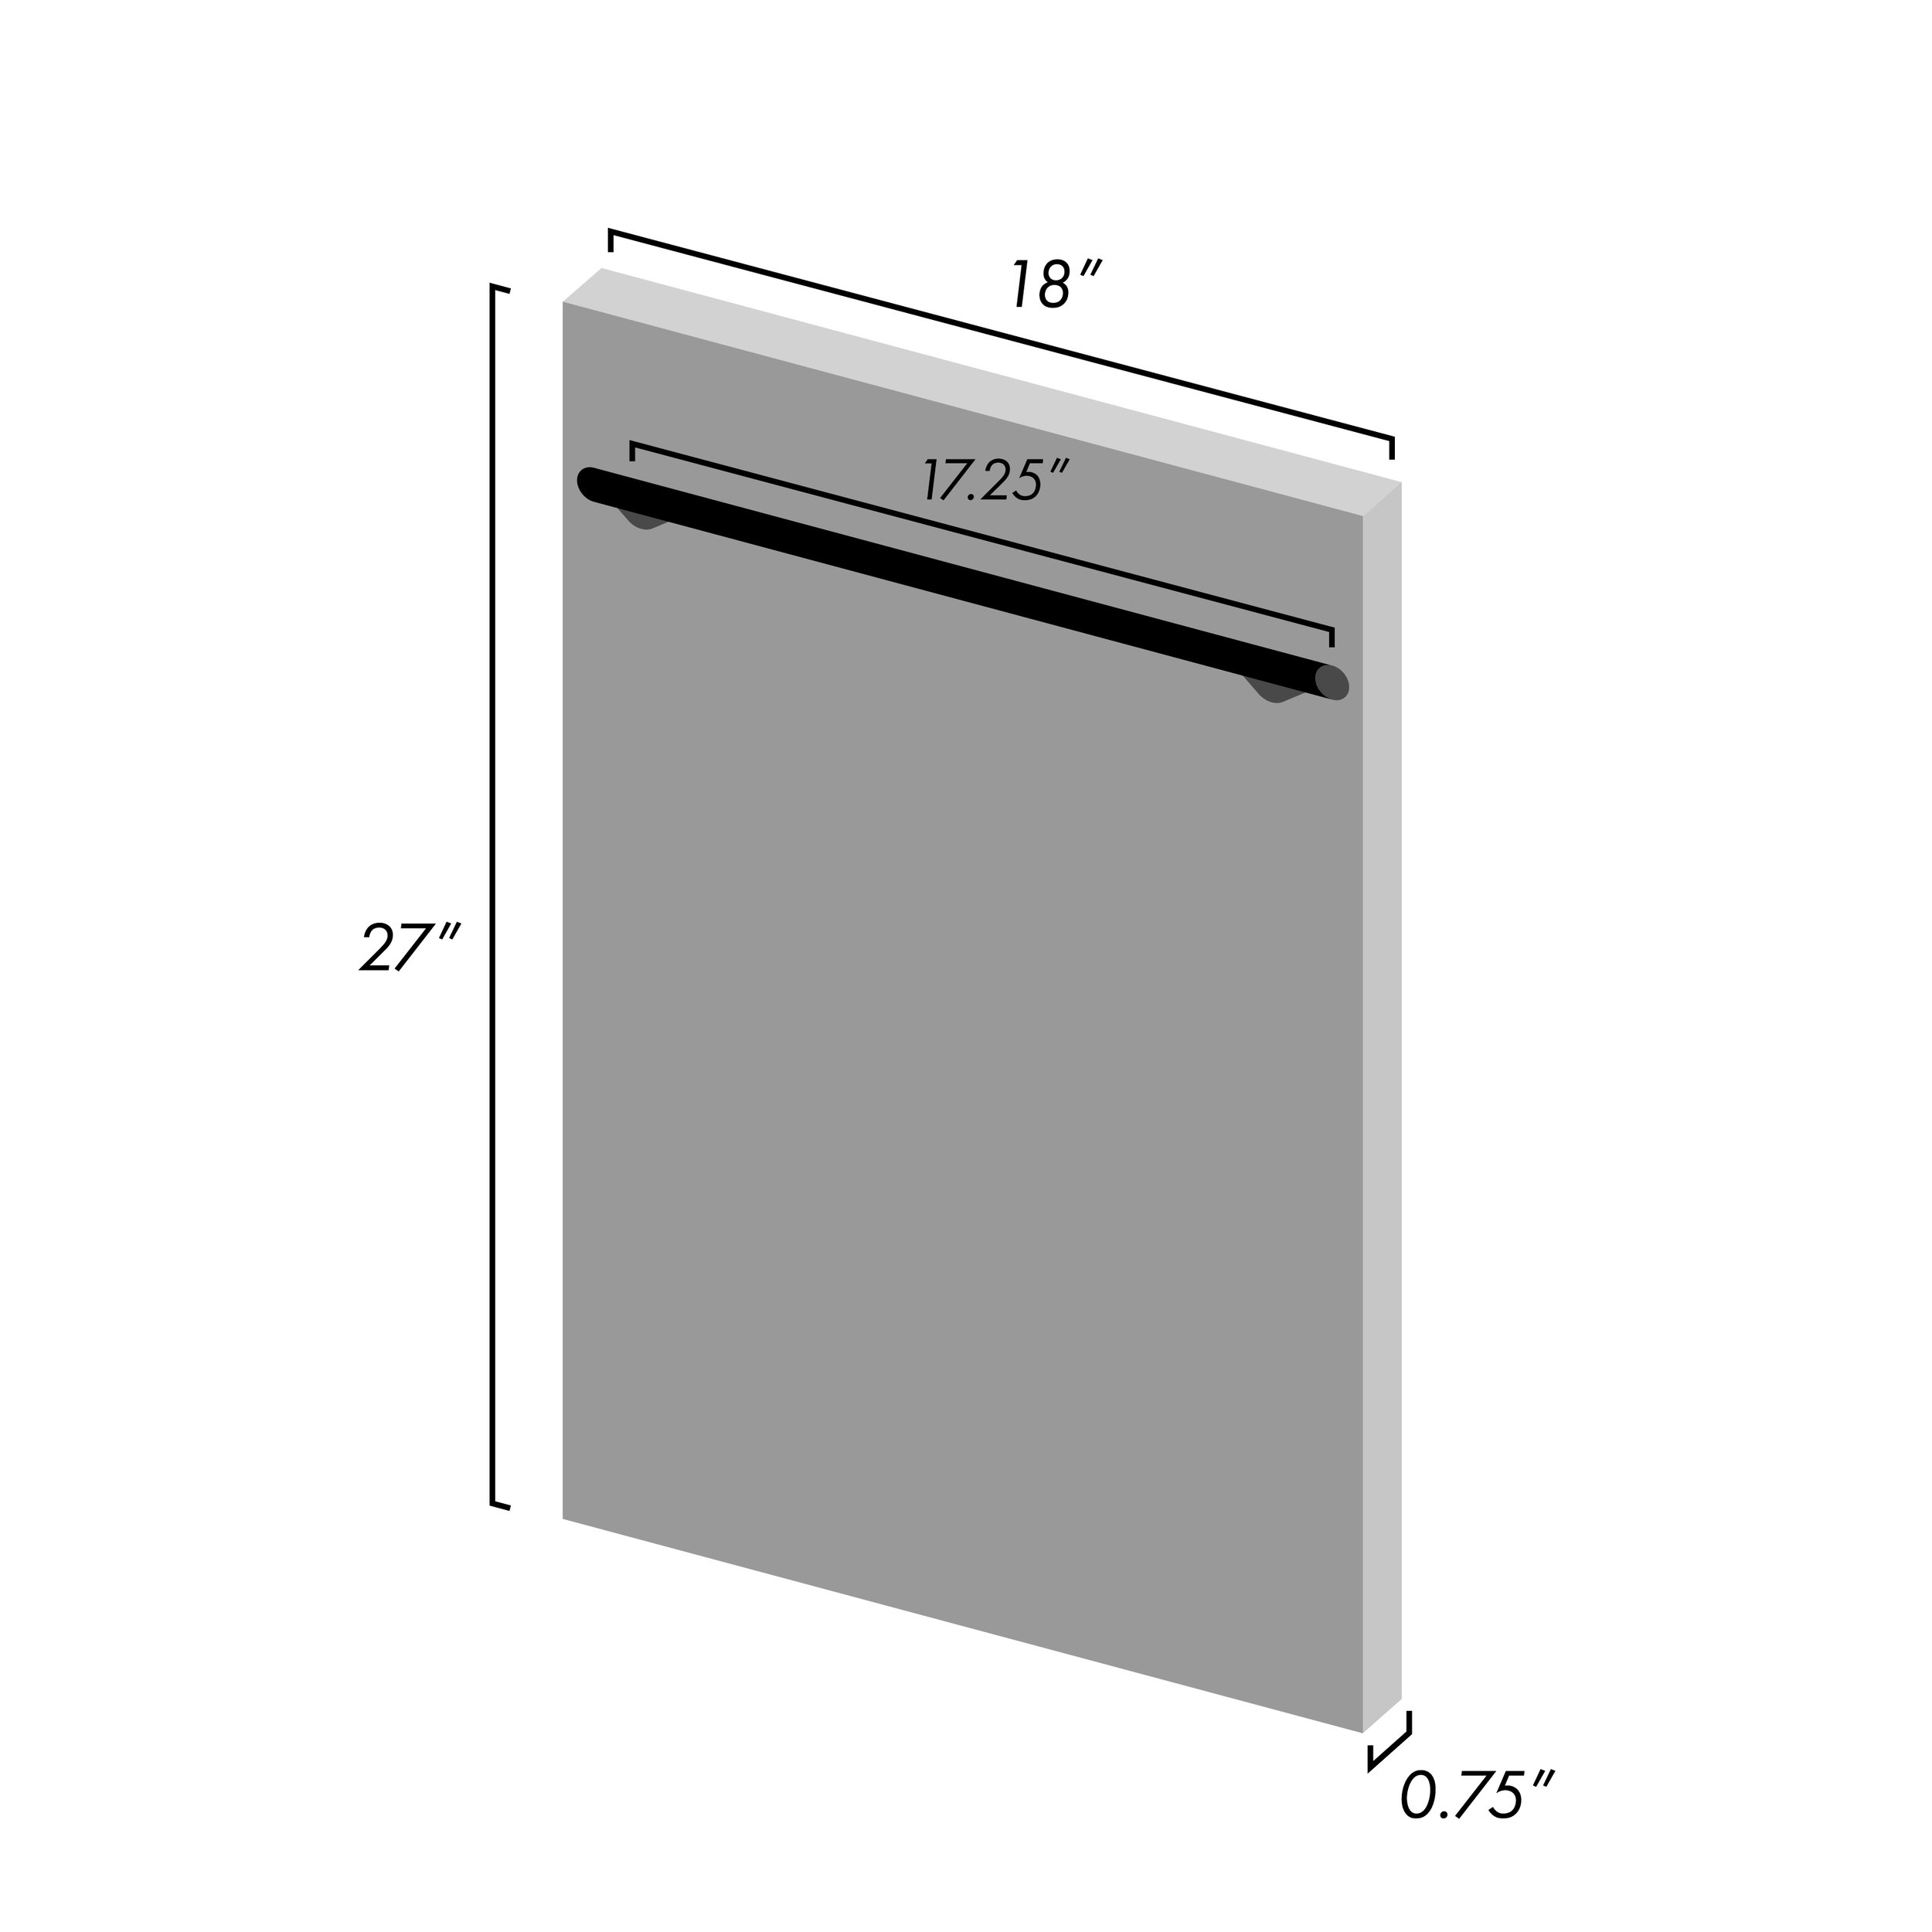 zline-panel-ready-dishwasher-snow-dw-SS-18-graphic.jpg